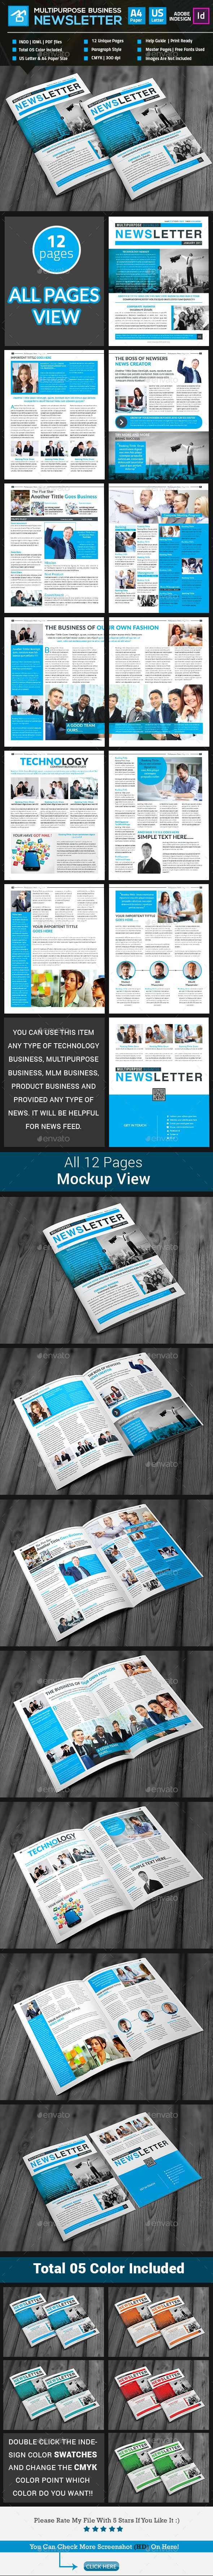 Multipurpose Business Newsletter Pages Pinterest Print - Pages newsletter templates